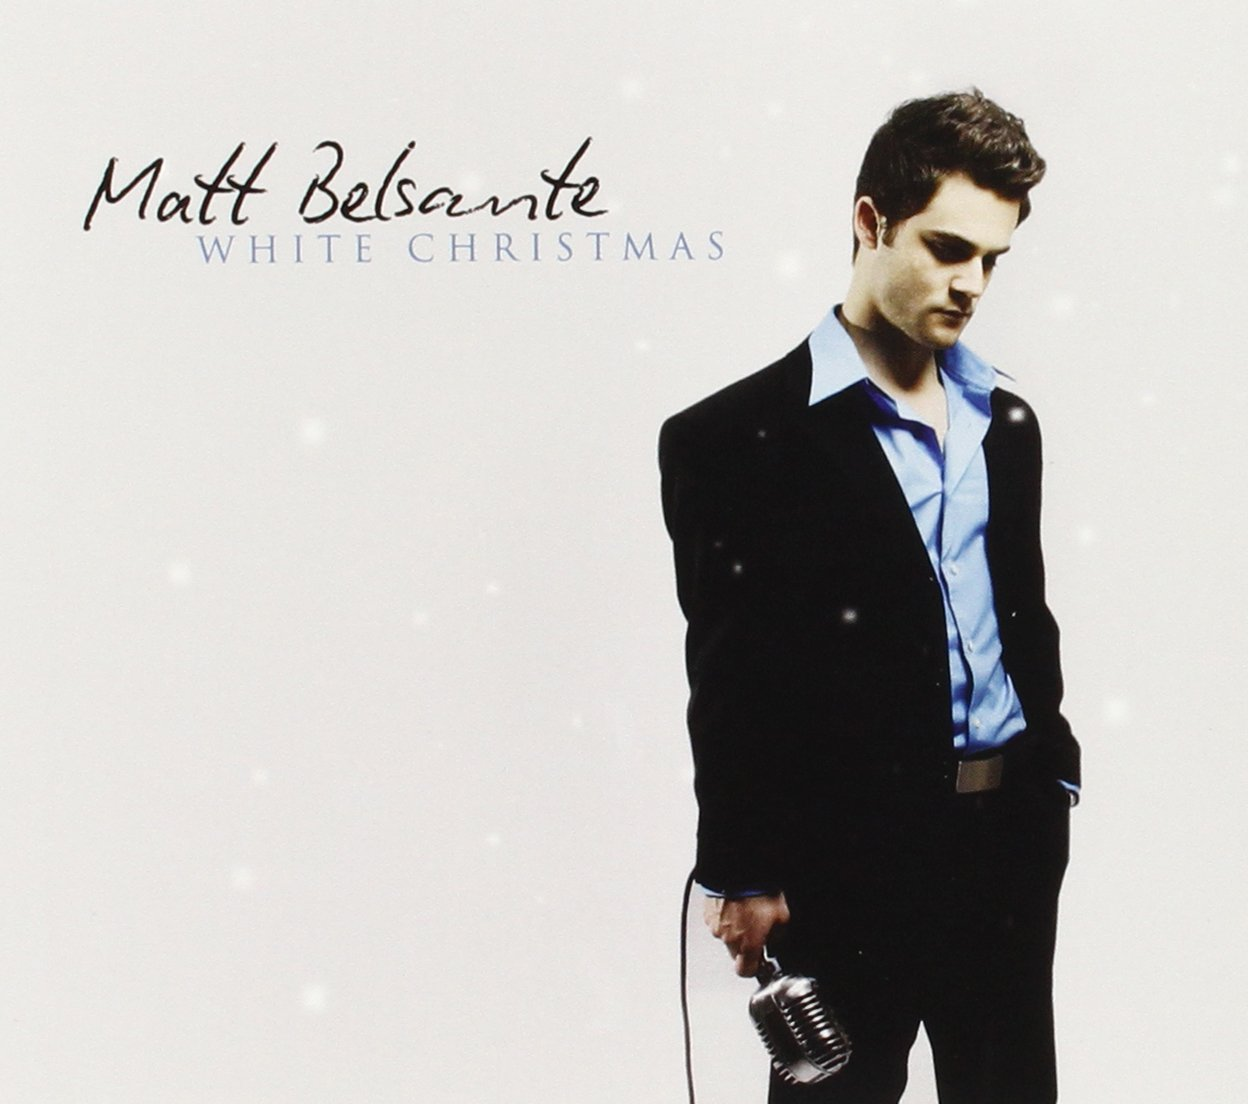 Matt Belsante - White Christmas - Amazon.com Music